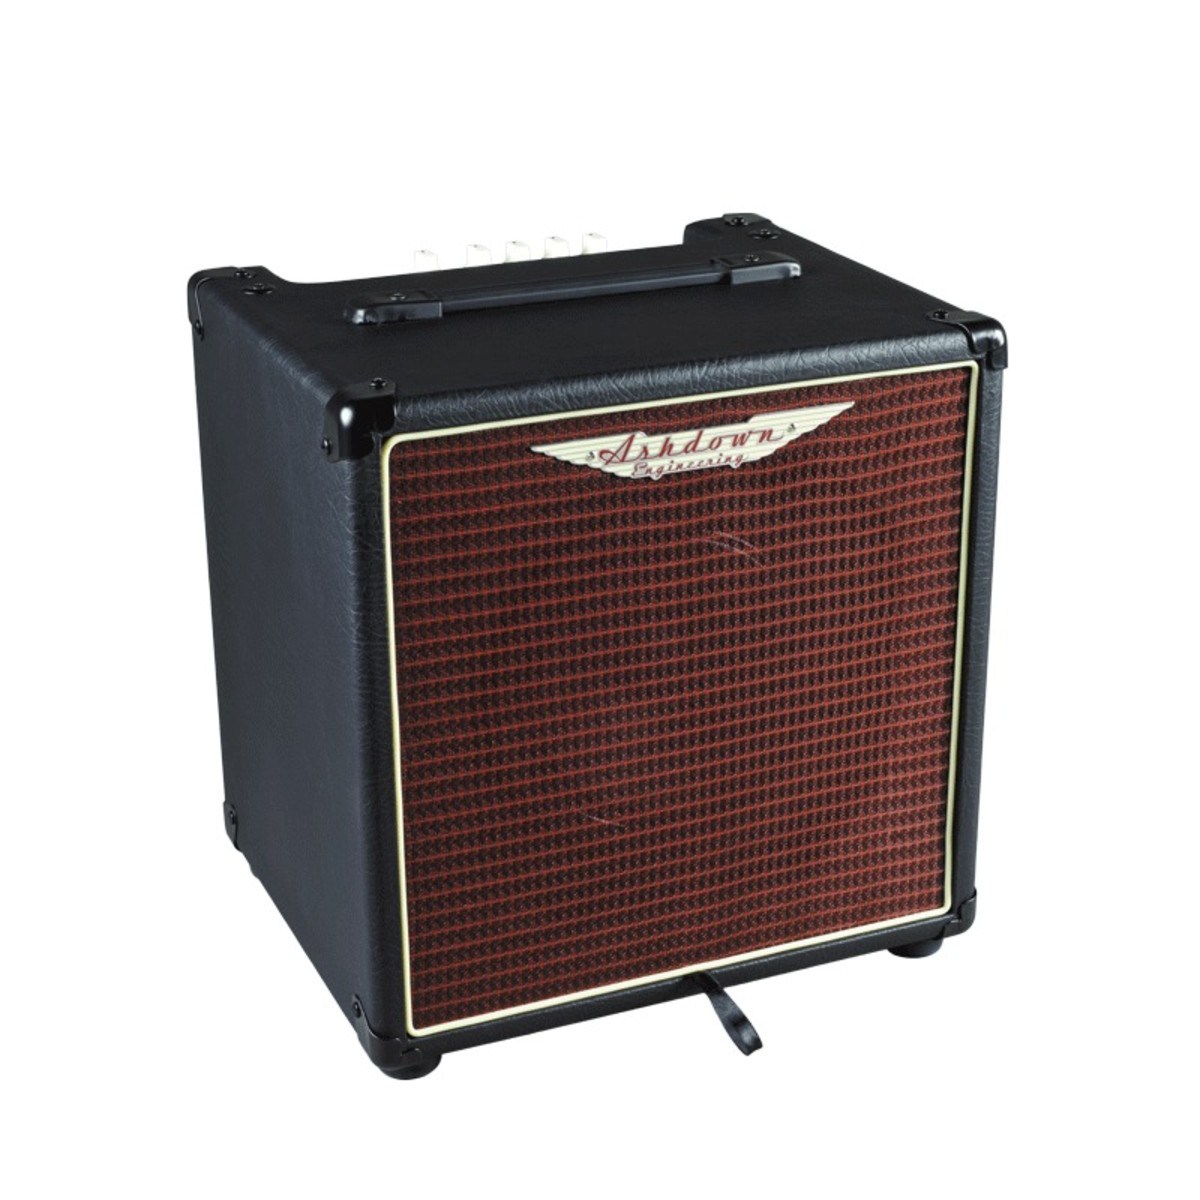 ashdown aaa 30 evo 8 lightweight 30w 1 x 8 bass amp combo at gear4music. Black Bedroom Furniture Sets. Home Design Ideas